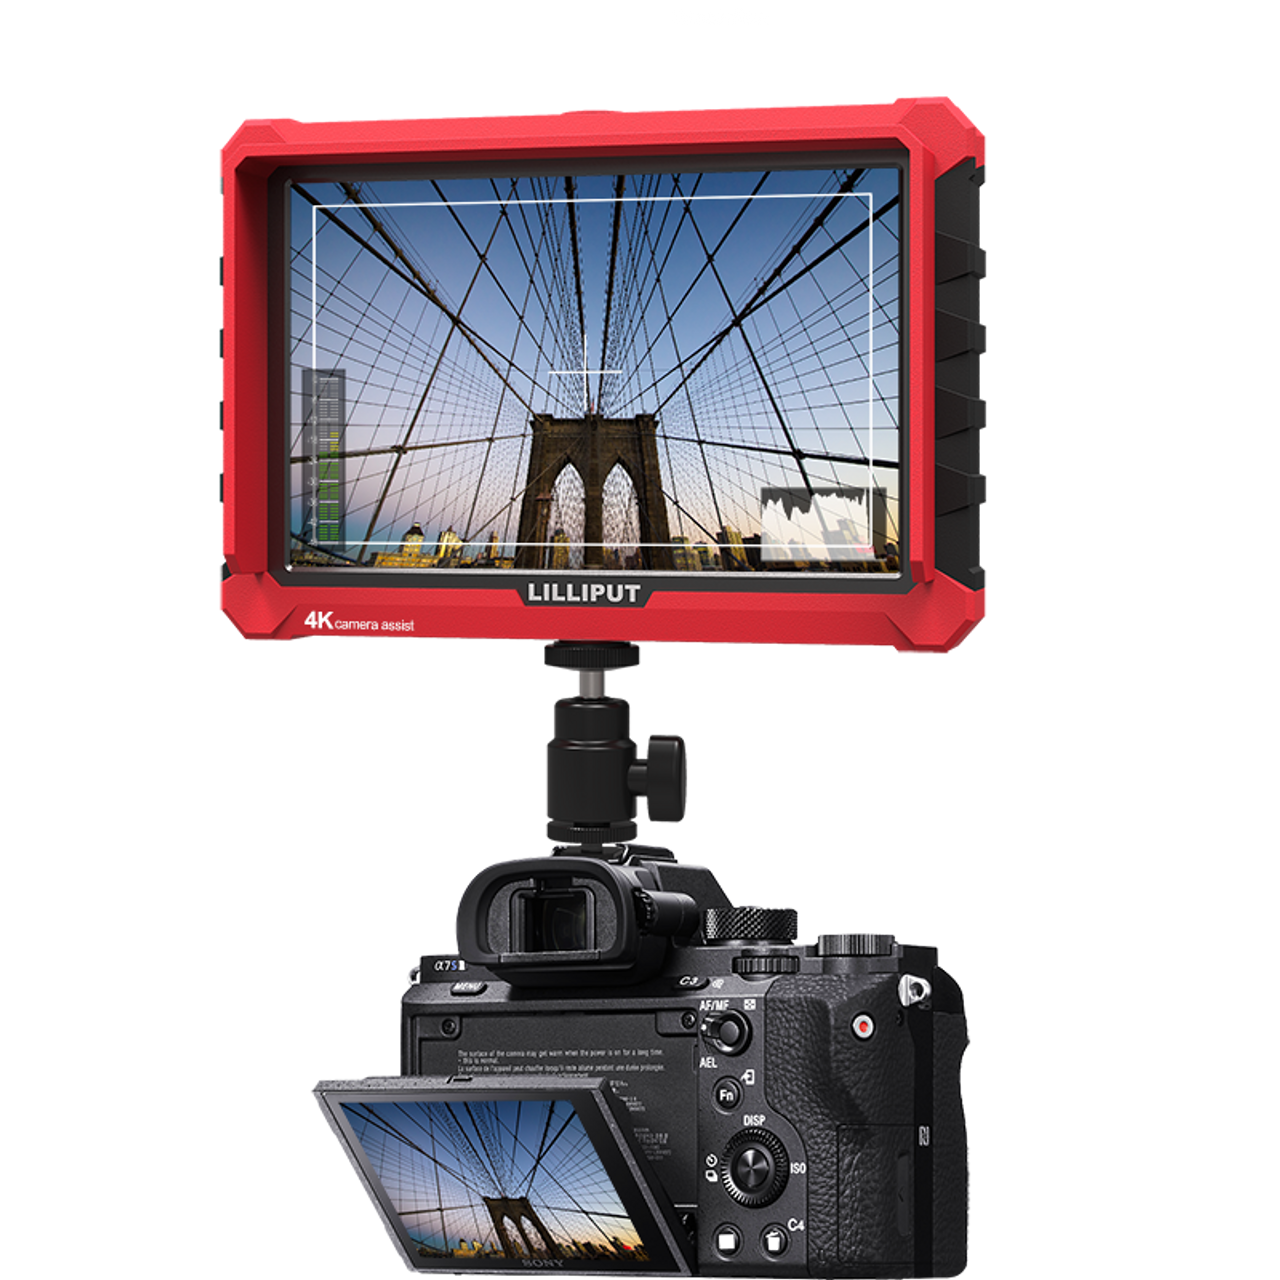 A7s Full HD 7 Inch Monitor with 4K camera assist